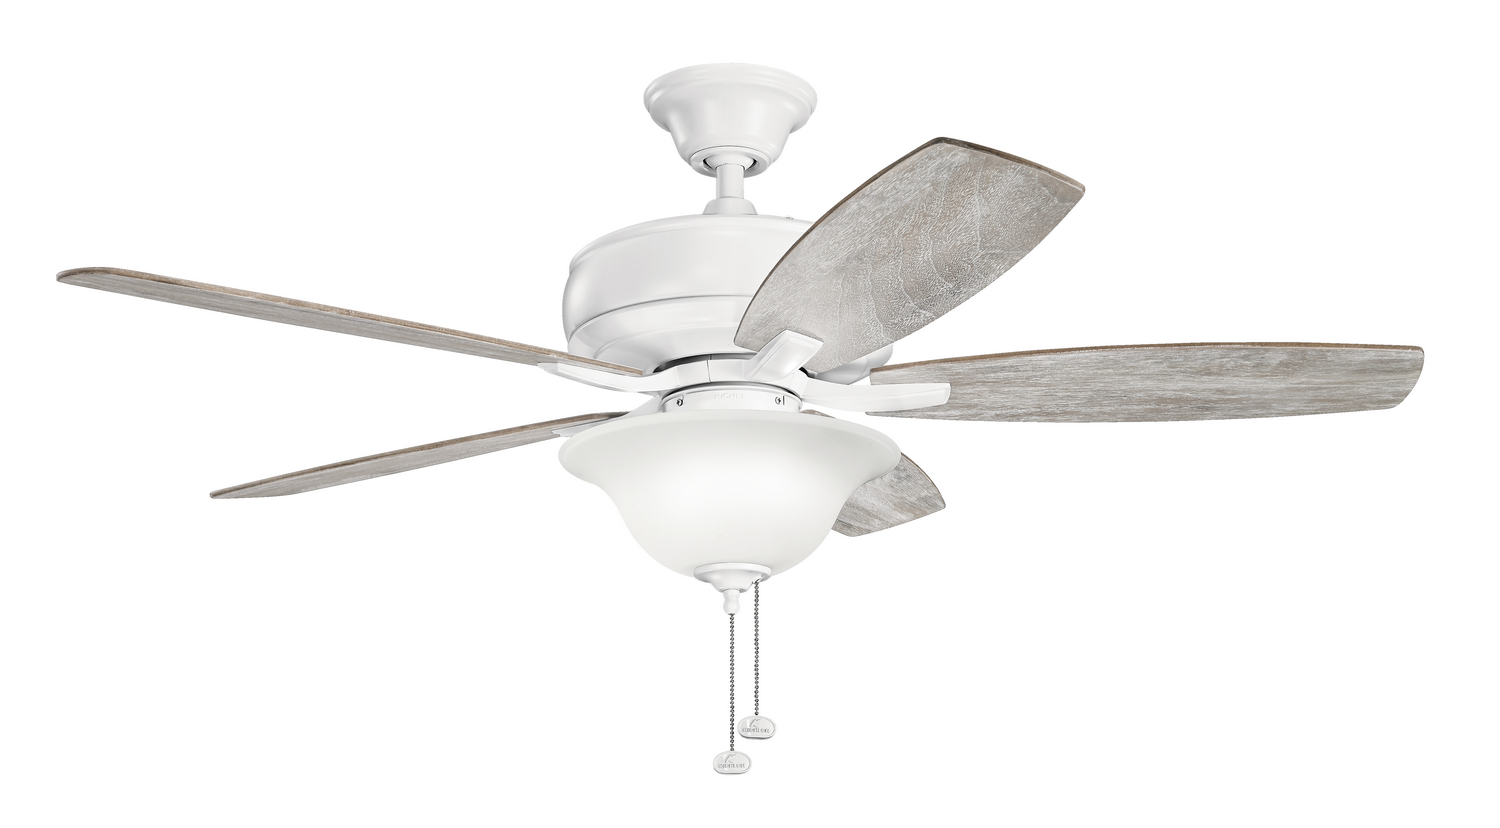 52 inchCeiling Fan from the Select collection by Kichler 330248MWH